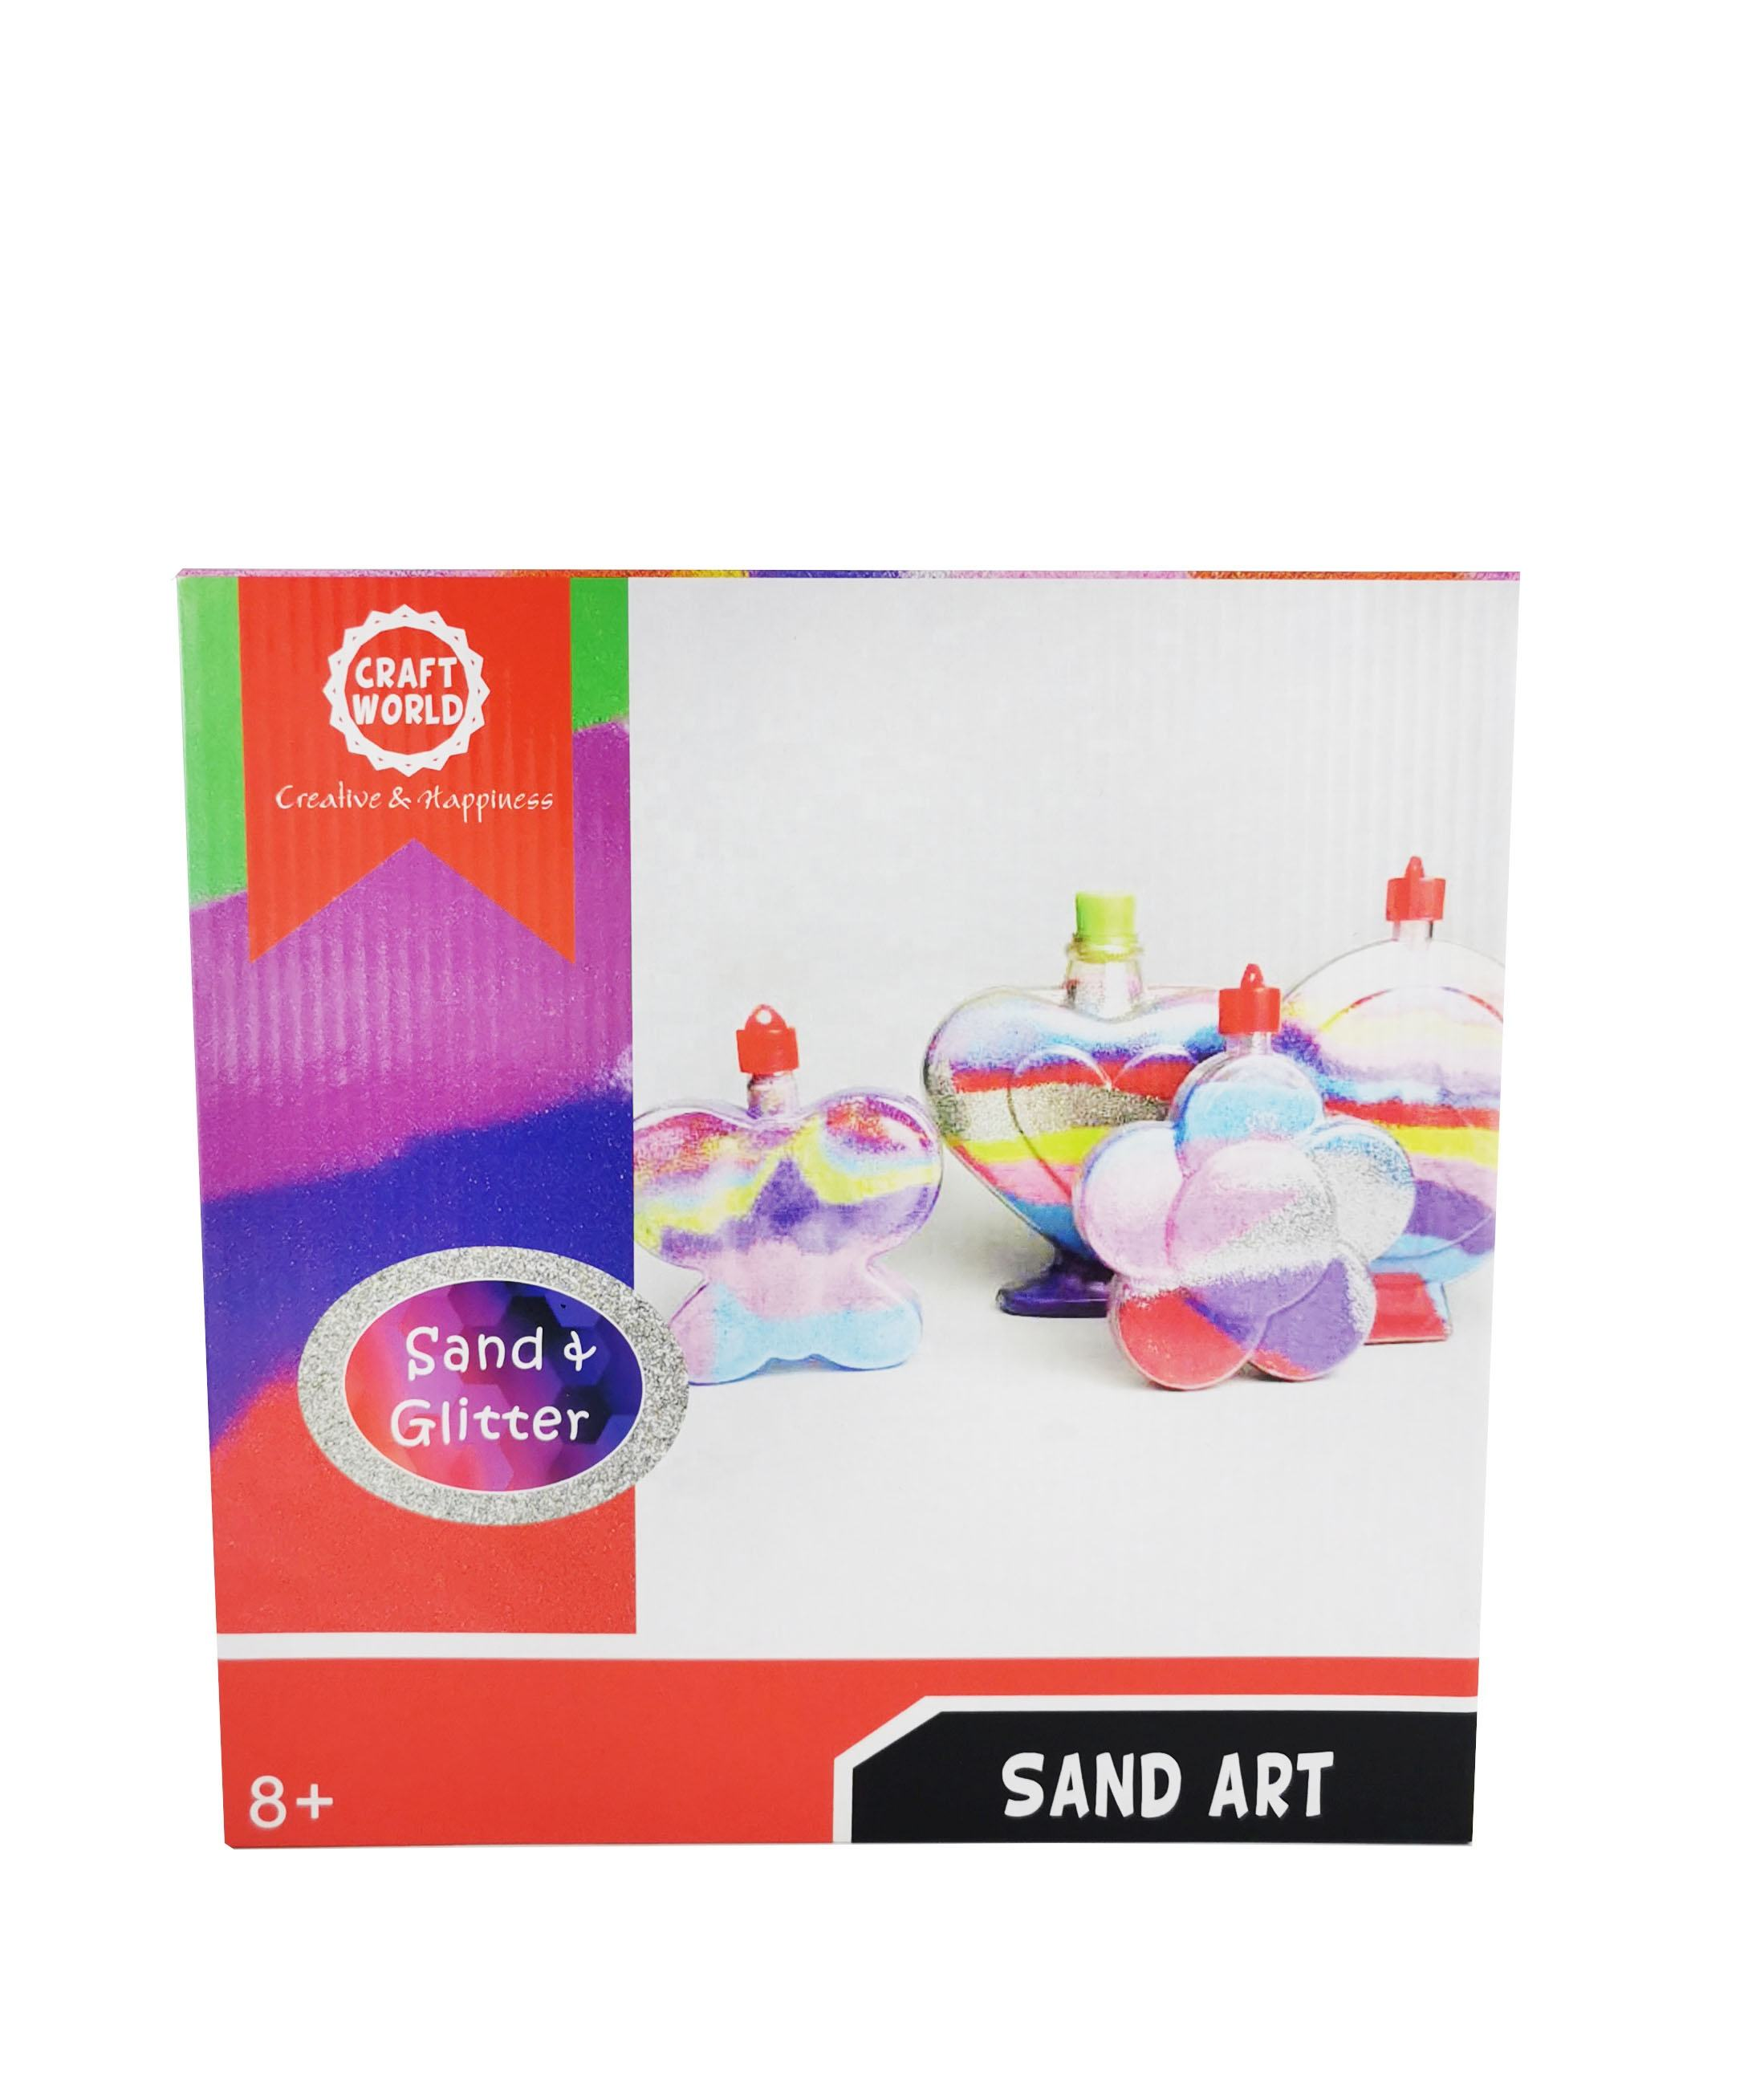 Sand Art Glitter Kit For Kids Arts Crafts Activities. Design Your Own Colorful Sand Bottle